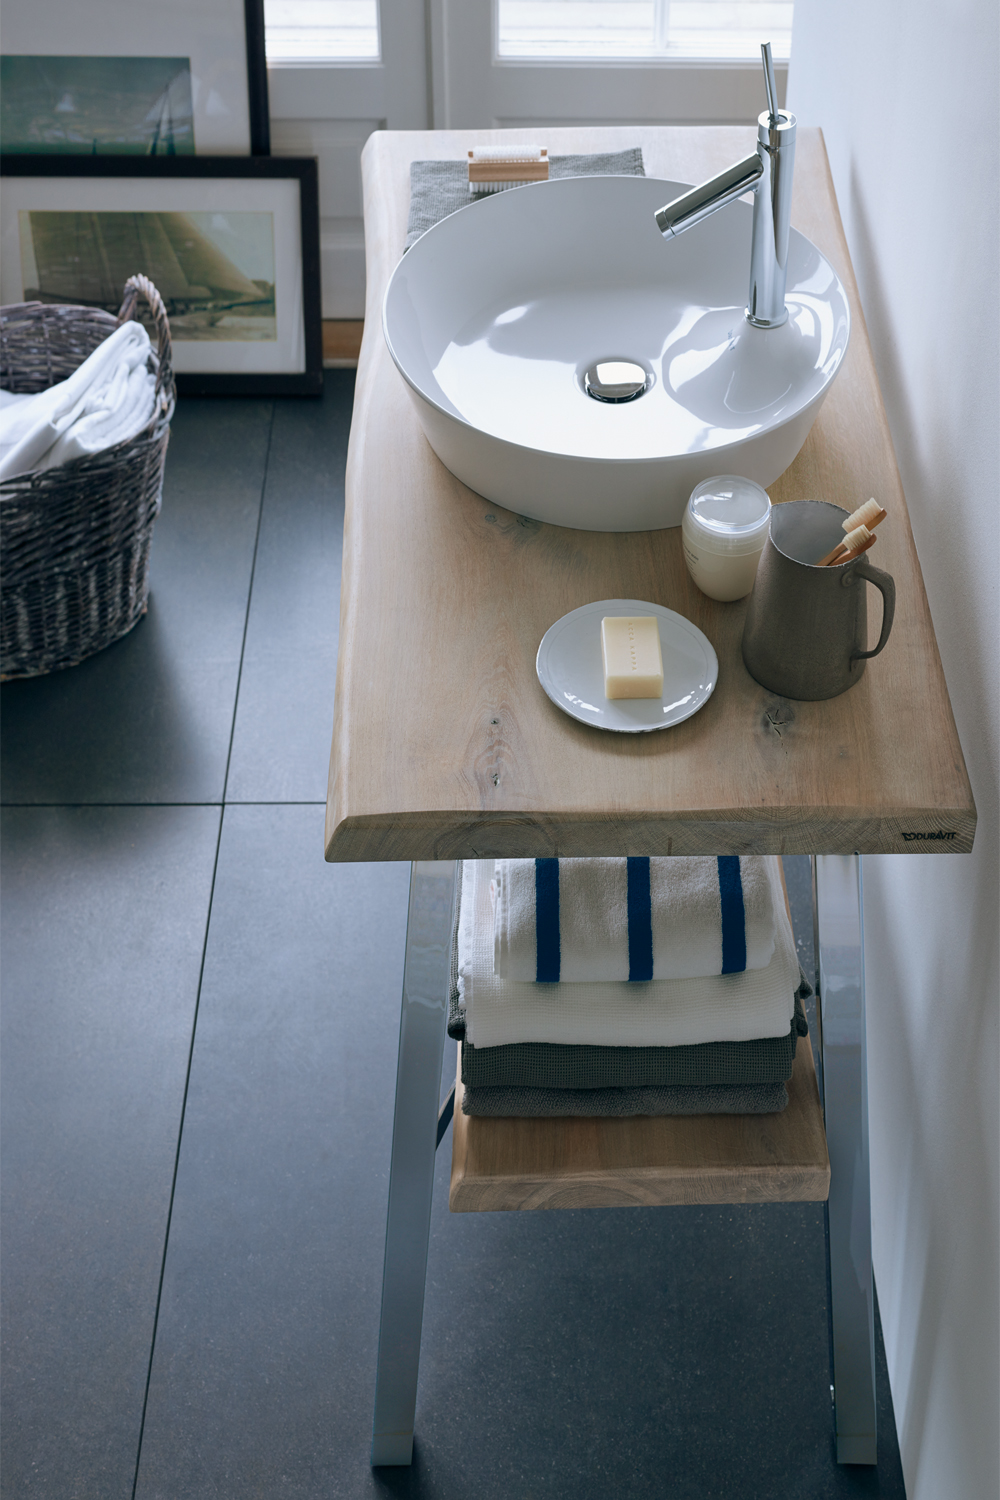 An innovative design: Philippe Starck's Cape Cod washbowl - wood timber vanity and cape cod basin by Philippe Starck